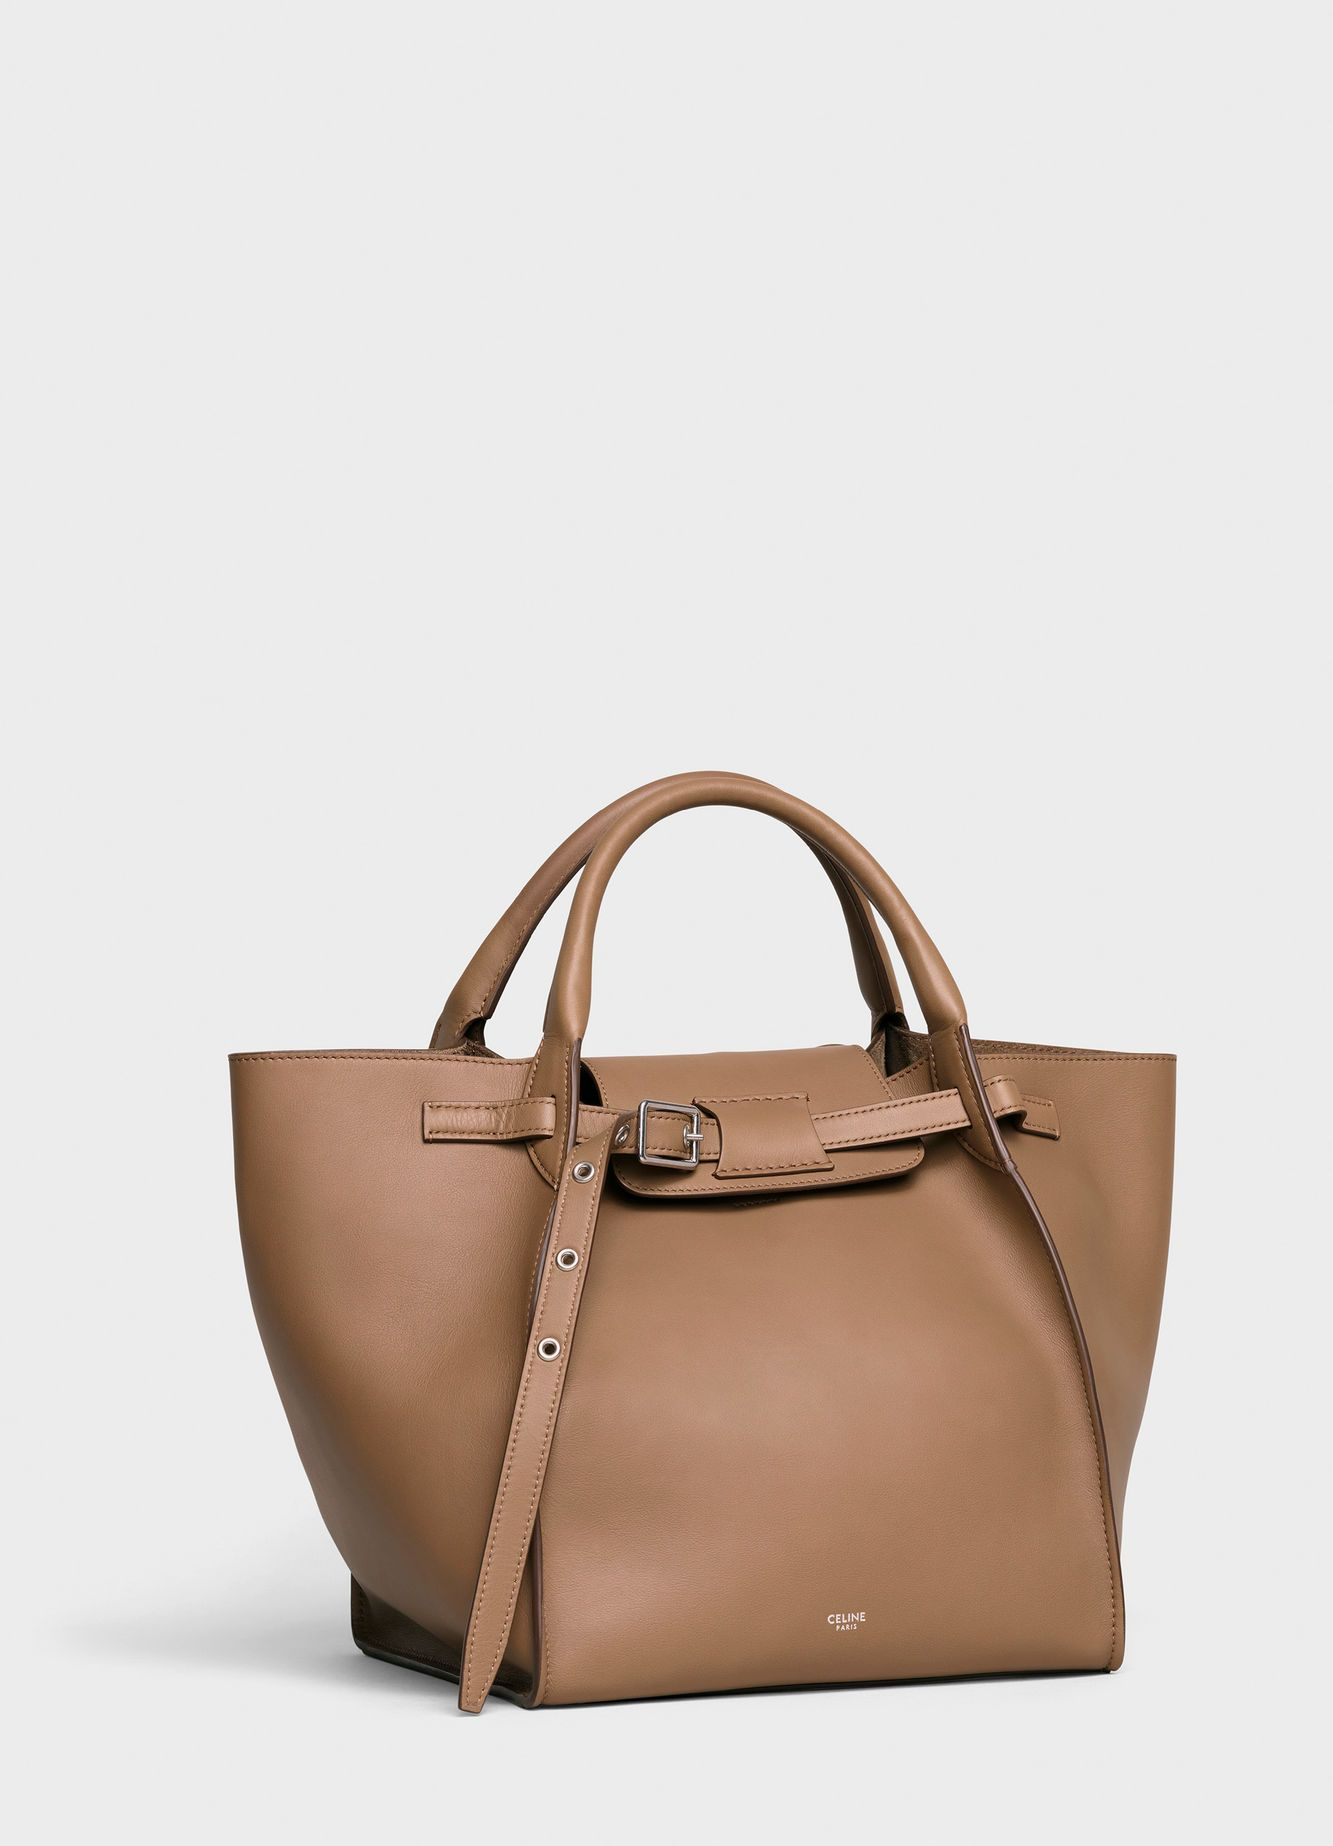 f421b252cd0 Céline - Small Big Bag with long strap in smooth light camel calfskin